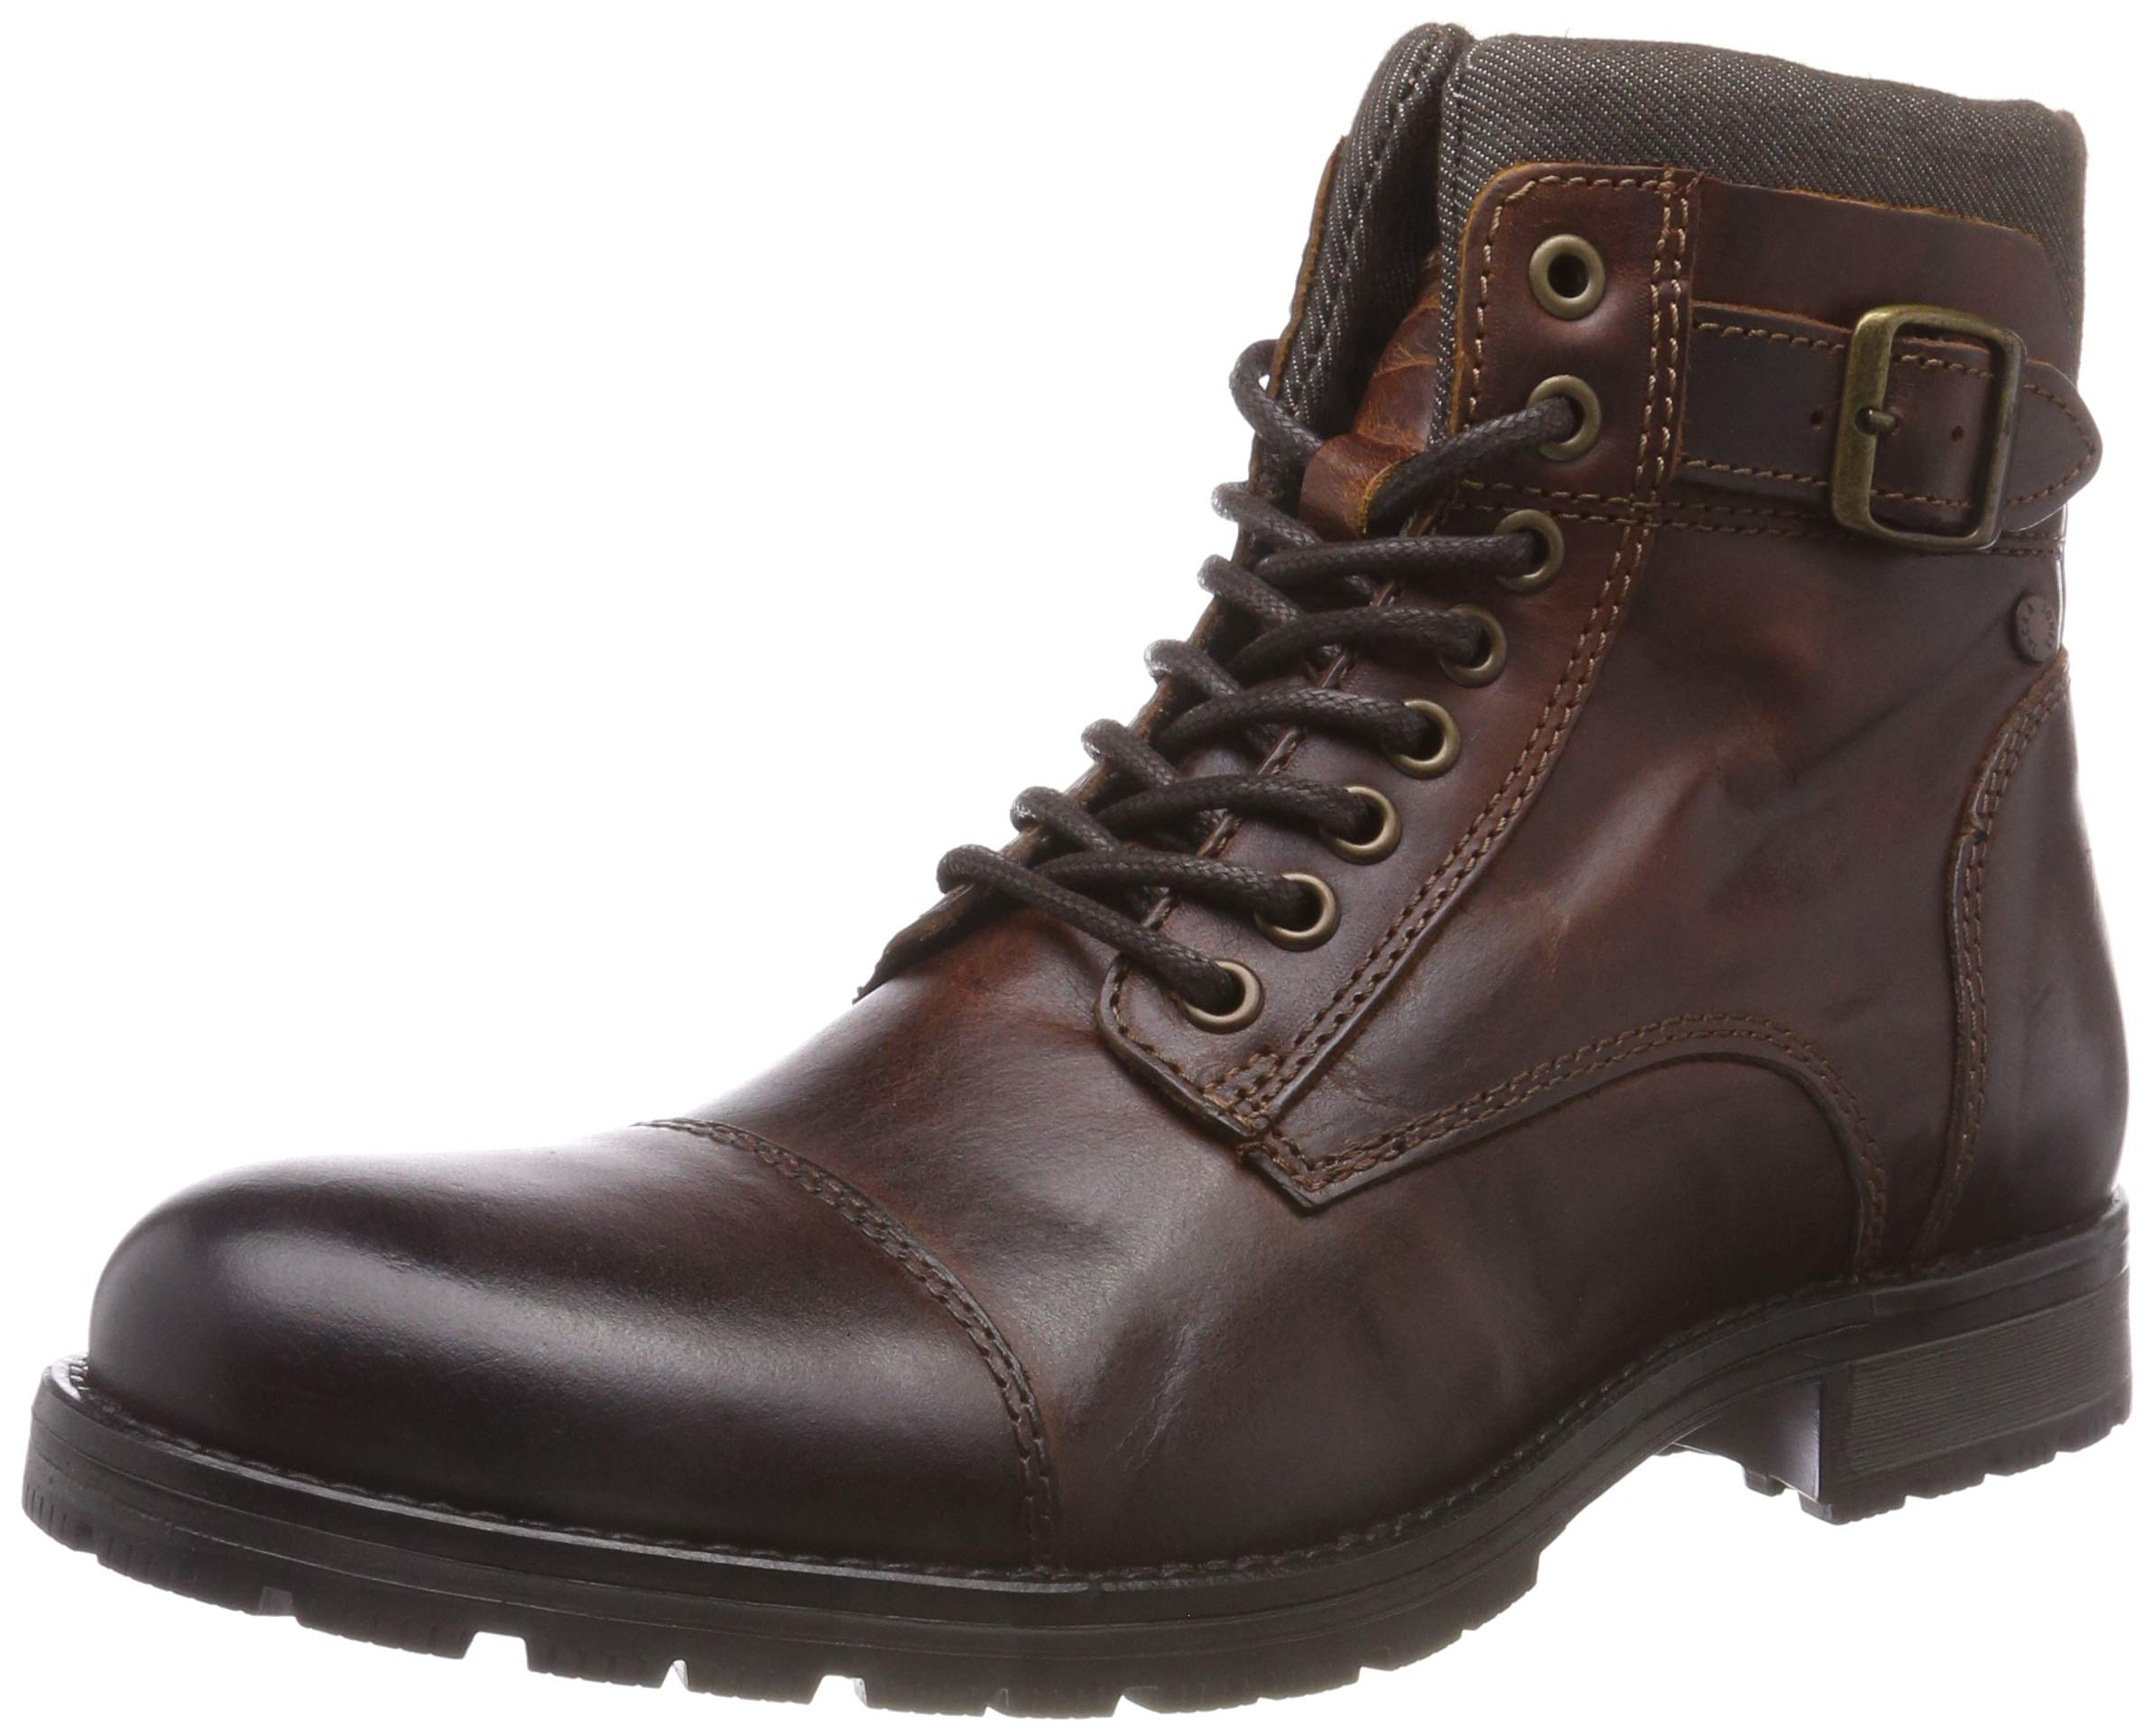 JACK & JONES Jfwalbany Leather Brown Stone Noos, Botas Clasicas para Hombre product image